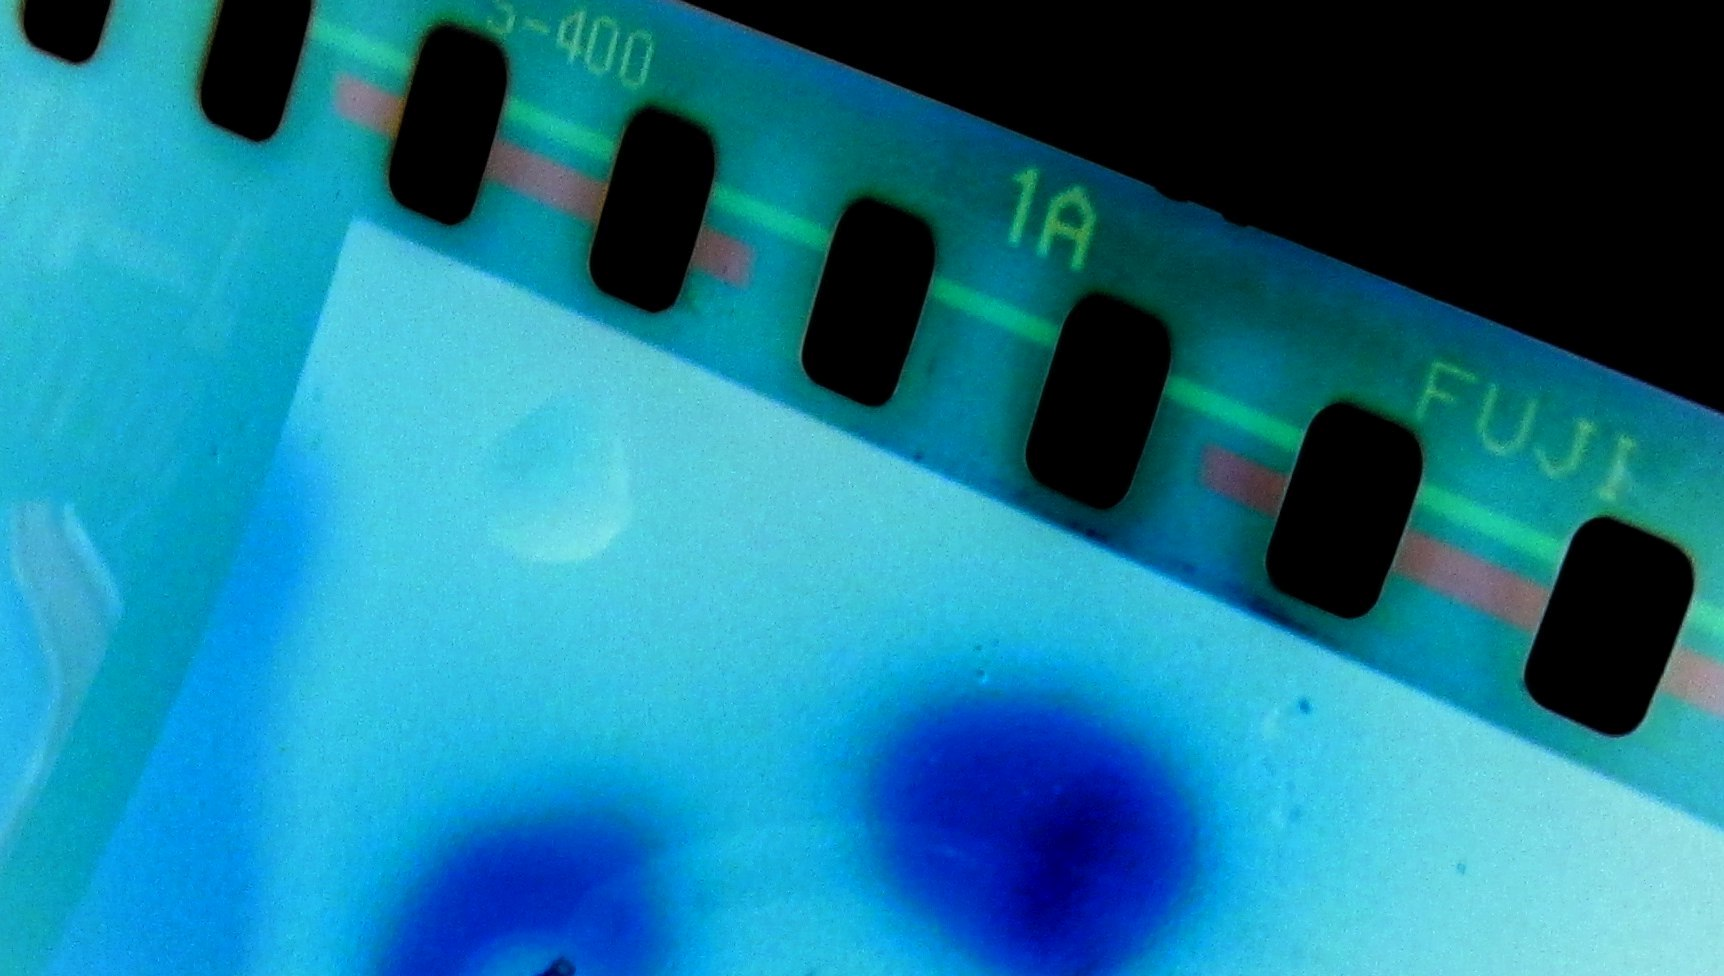 Inverted image of color film negative